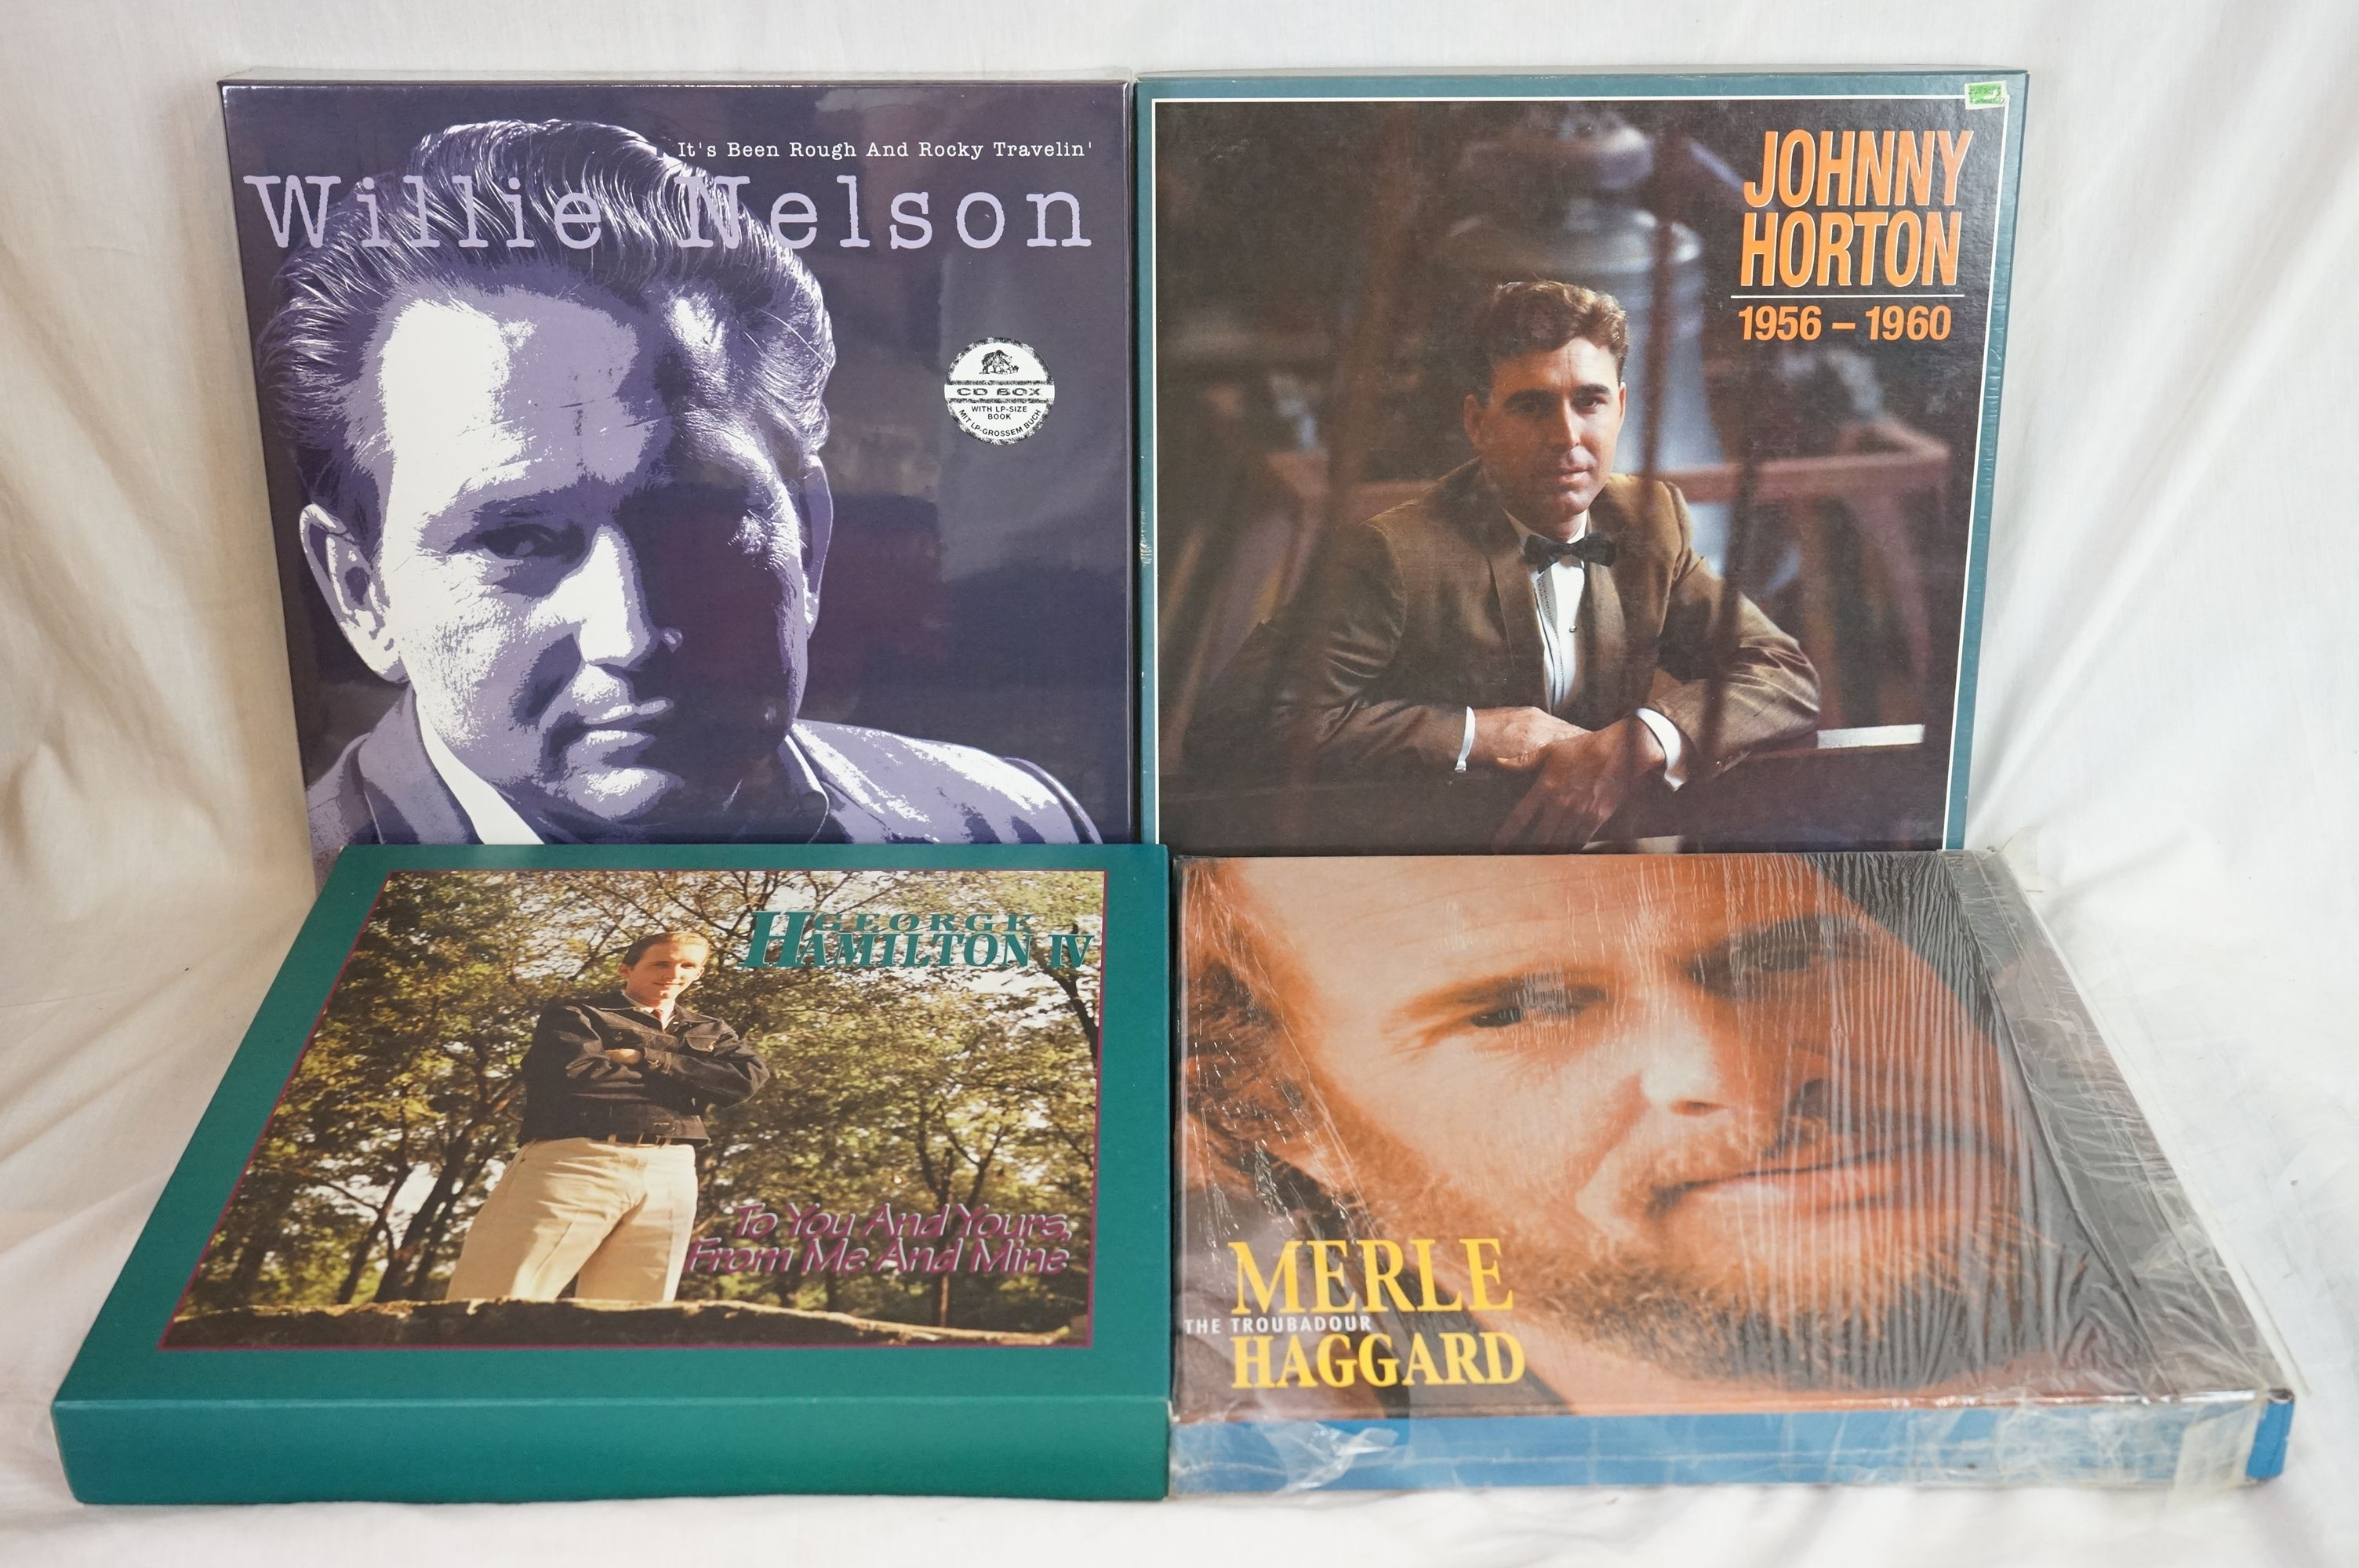 Box Sets - 13 Box Sets to include Cliff Bruner, Fats Domino, The Kingston Trio, The Blue Sky Boys - Image 2 of 3